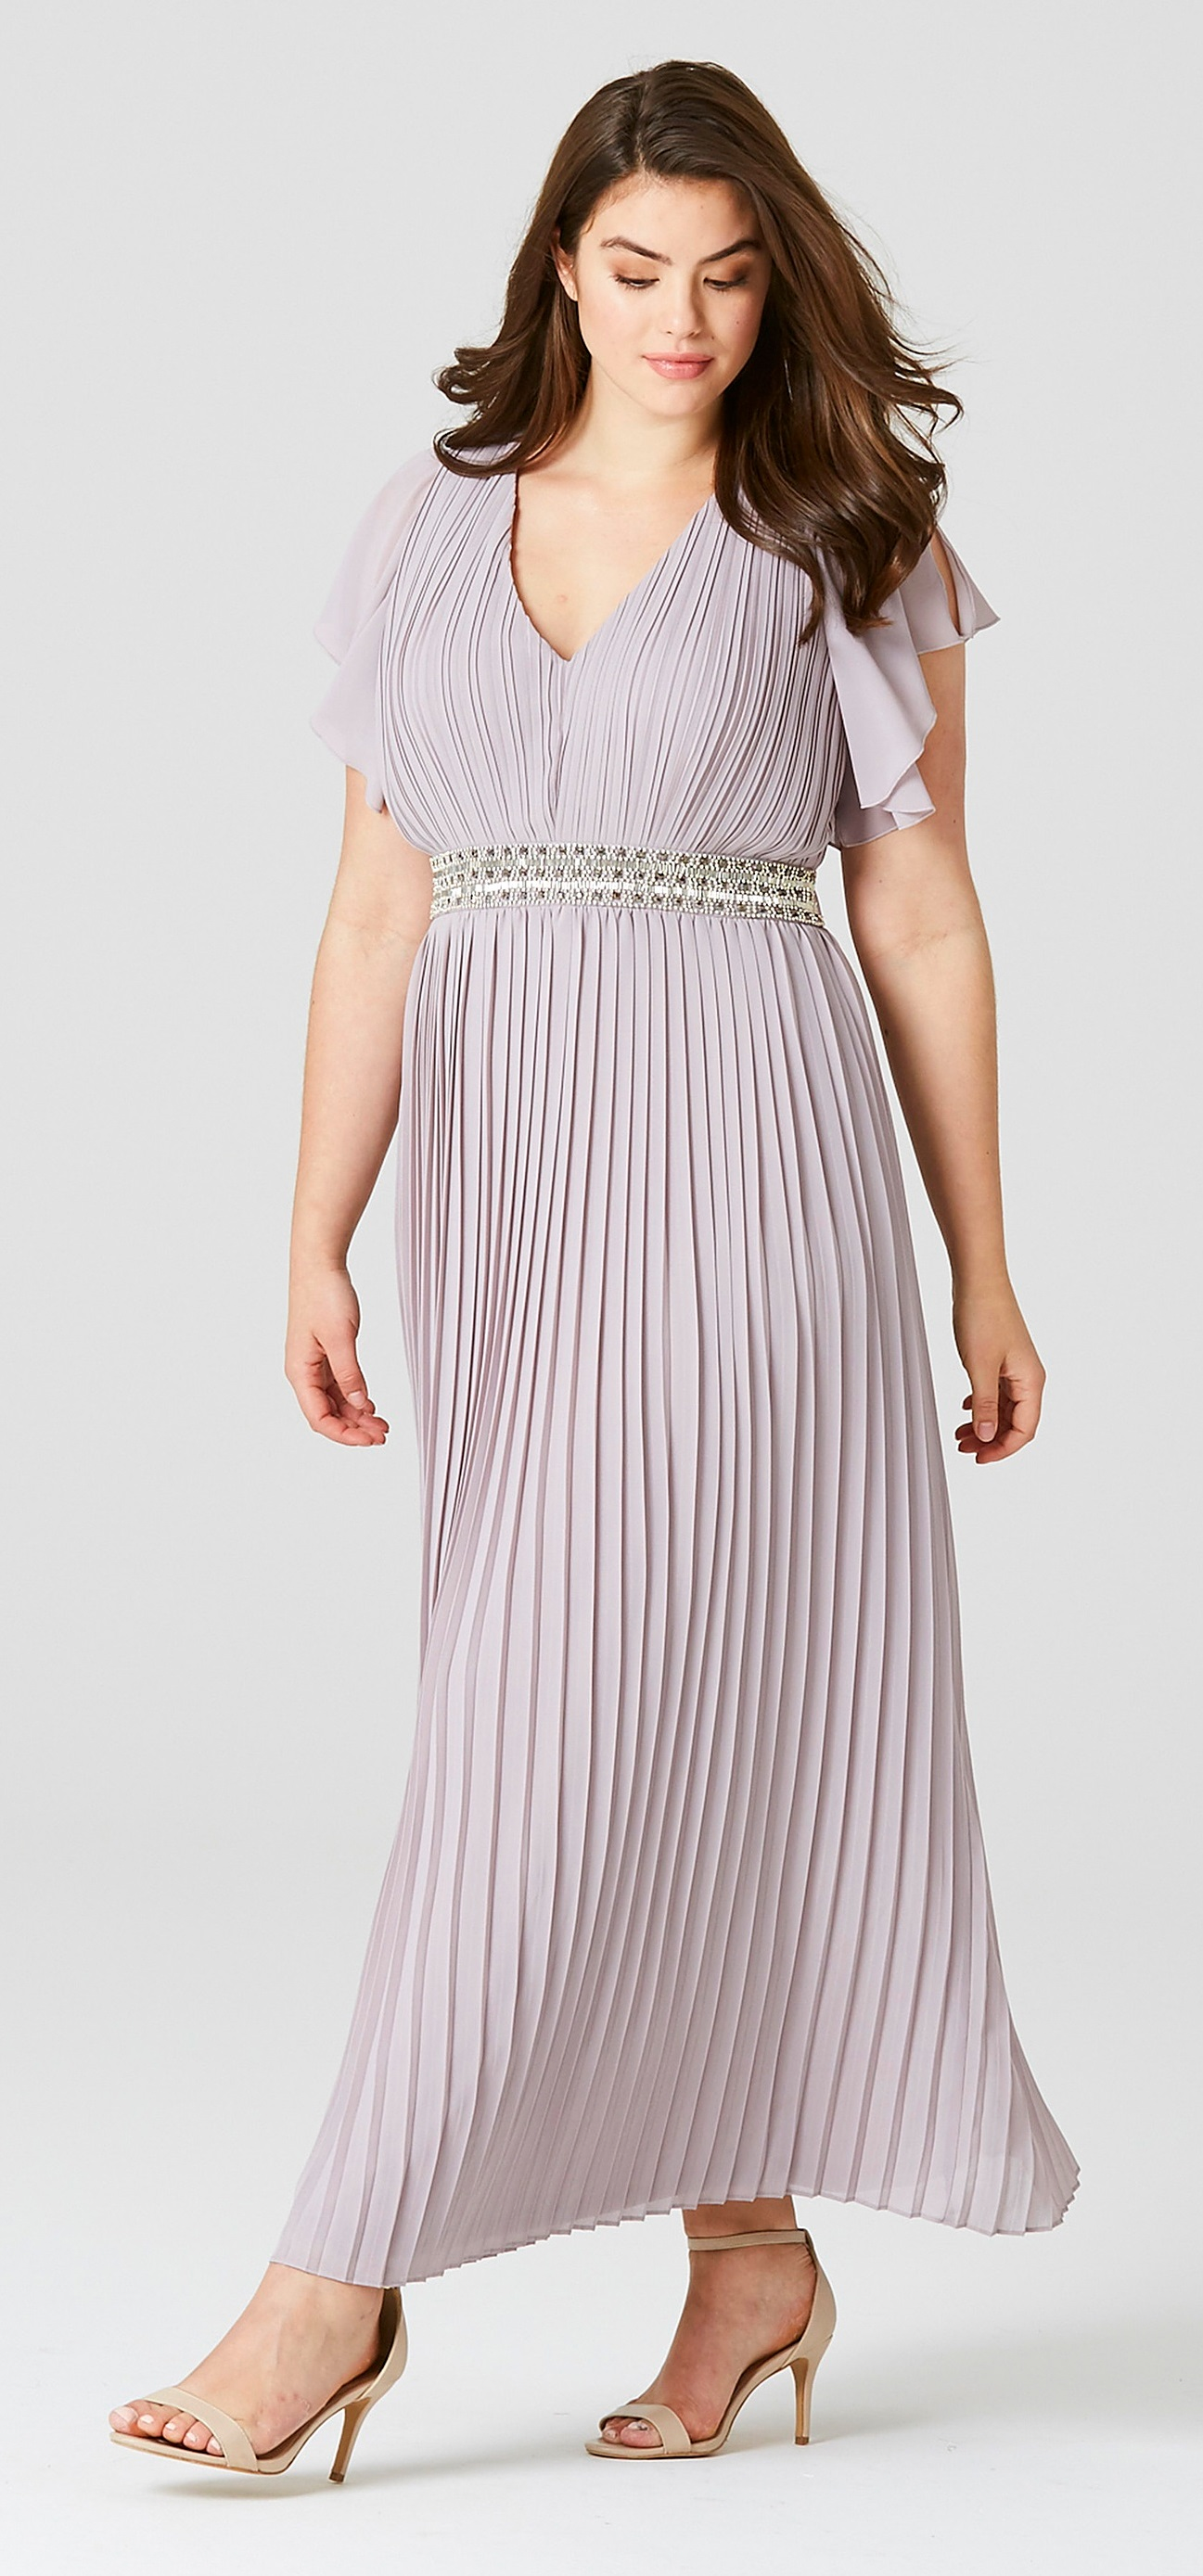 Genial 45 Plus Size Wedding Guest Dresses {with Sleeves}   Plus Size Cocktail  Dresses